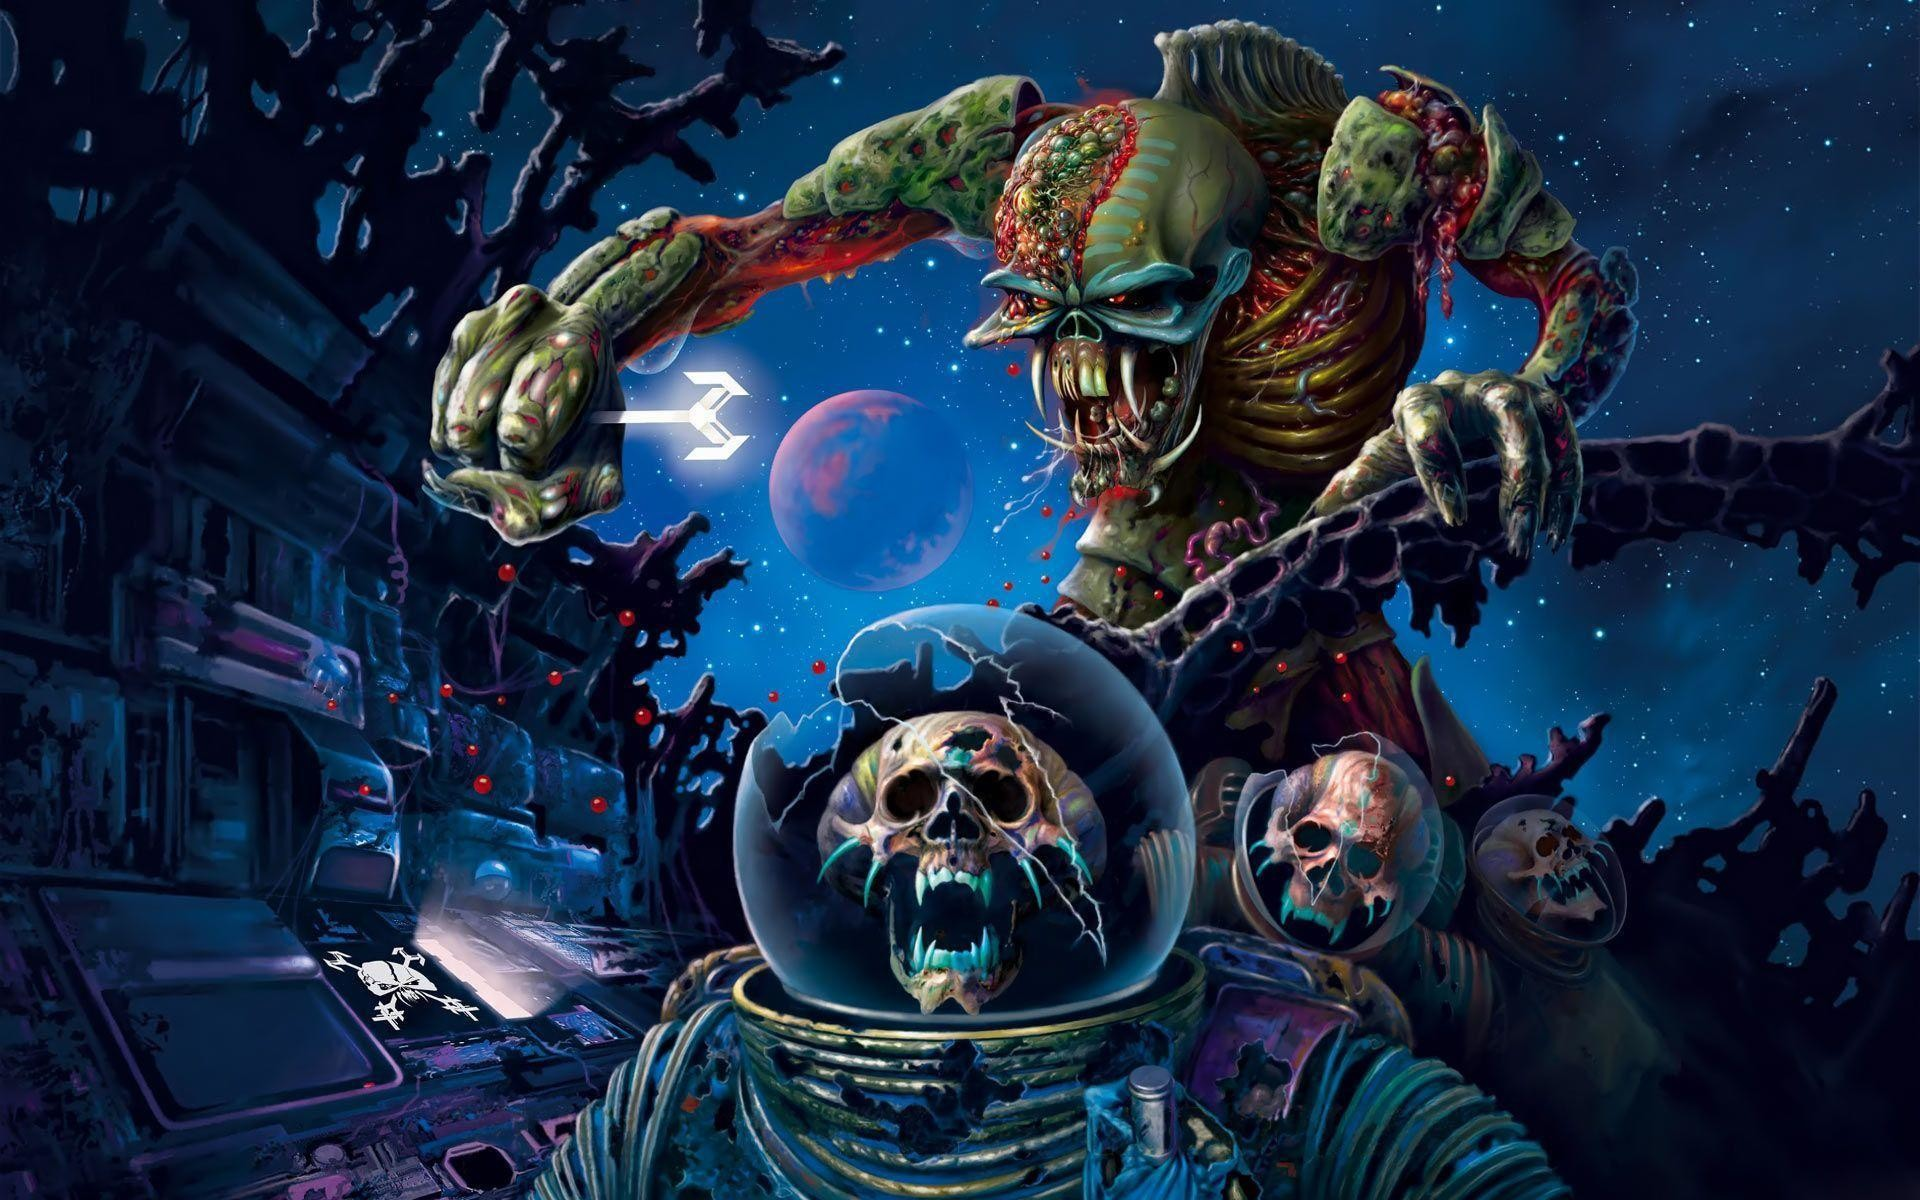 1920x1200 Desktop Wallpaper · Celebrities · Music · Iron Maiden Heavy metal .